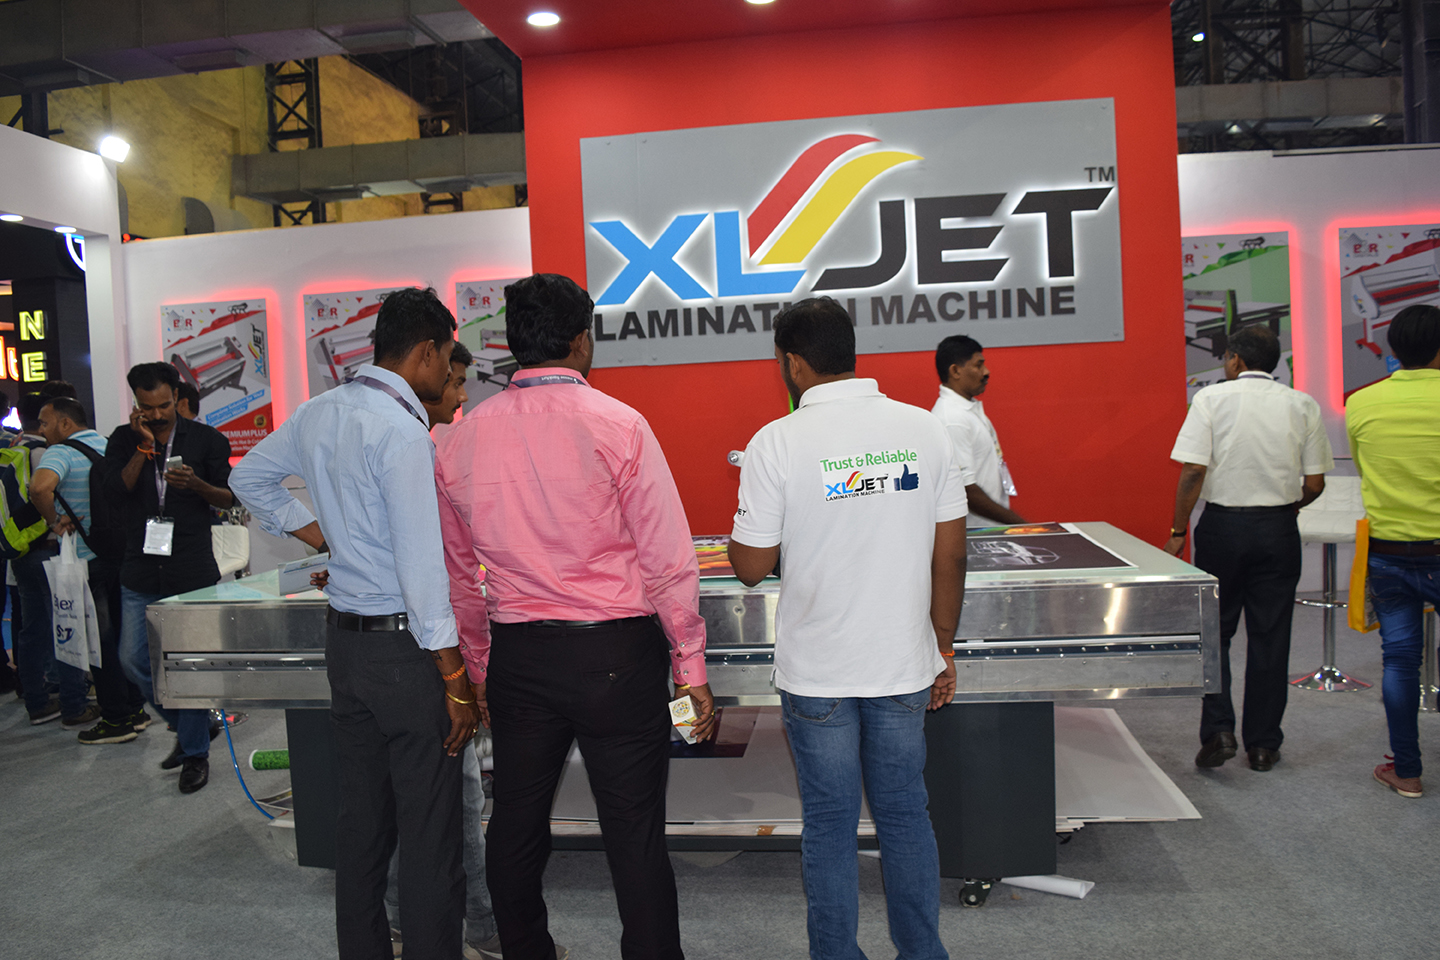 xljet lamination machine, lamination machines, b&r digitals, media expo